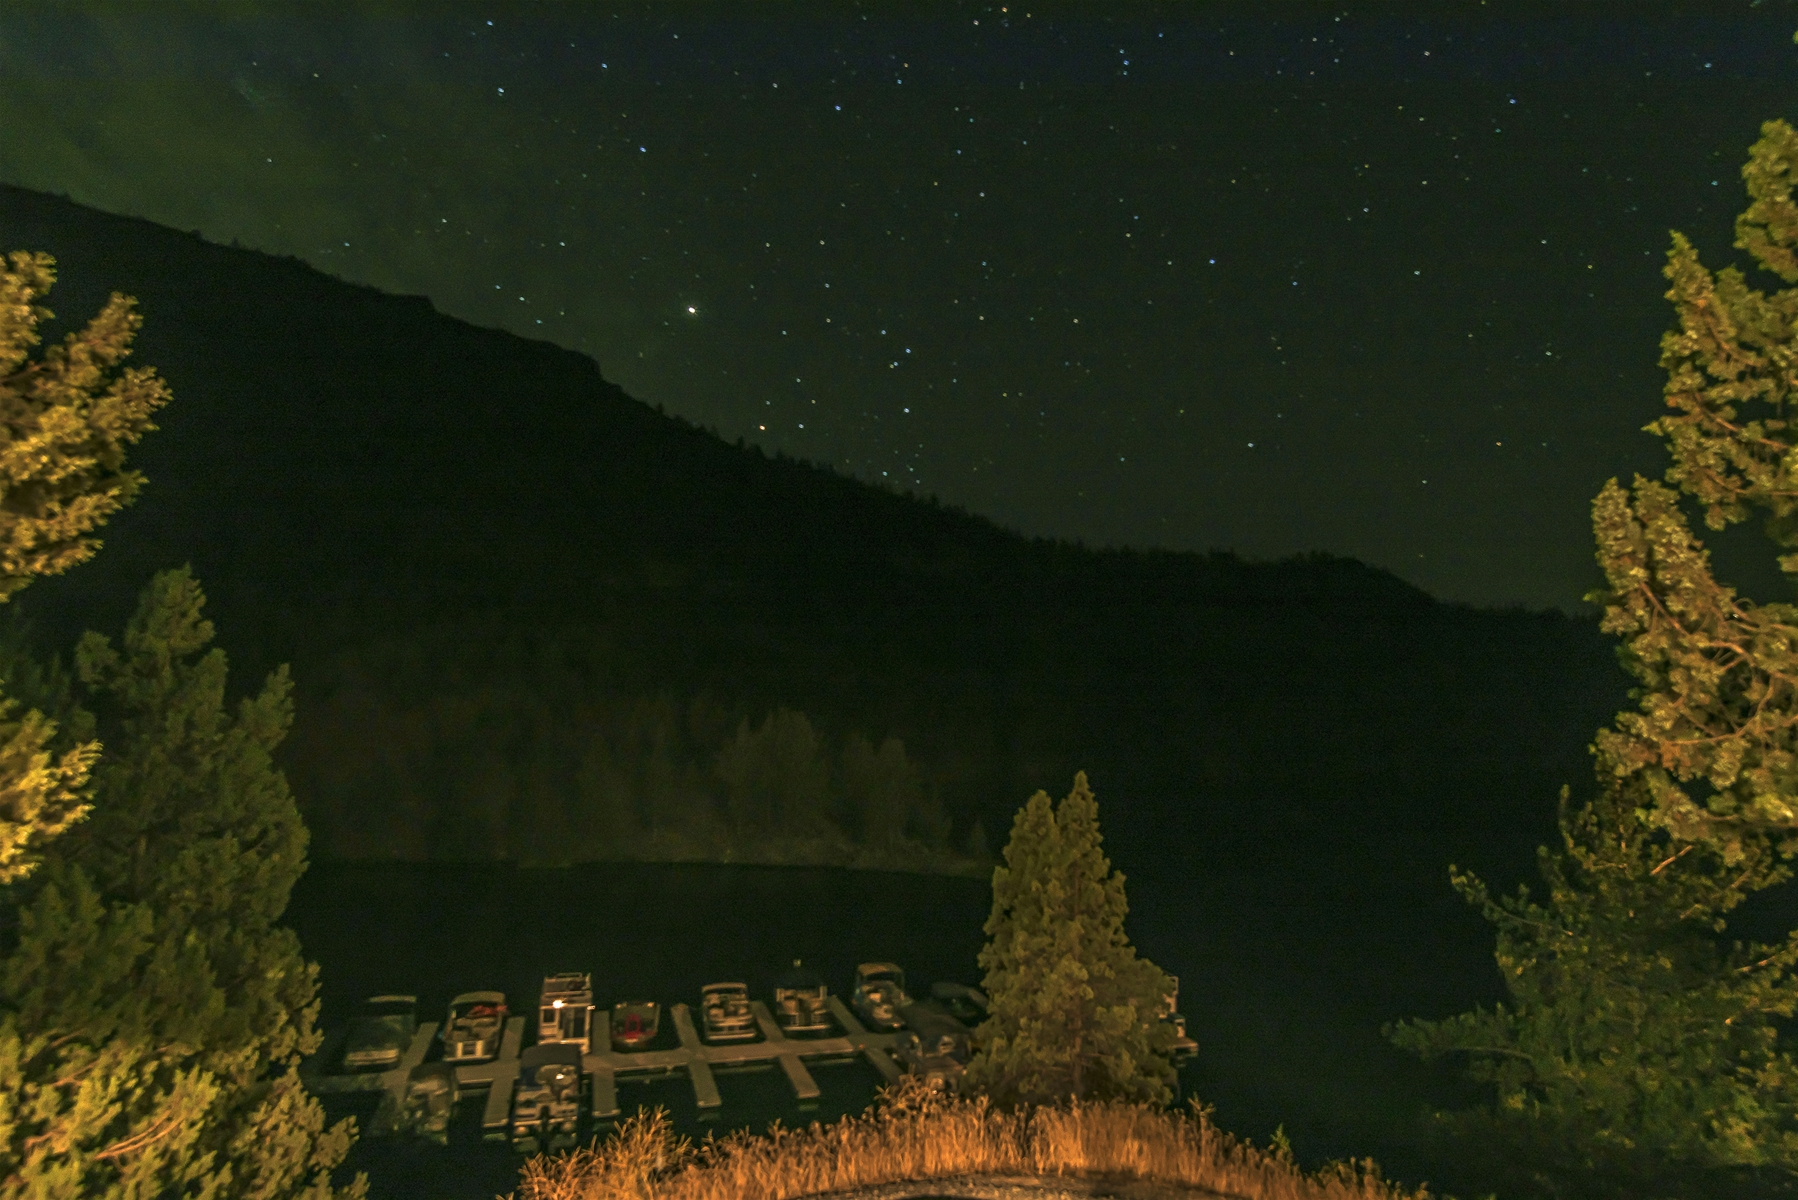 Stargazing is AMAZING at Lake Simtustus Resort